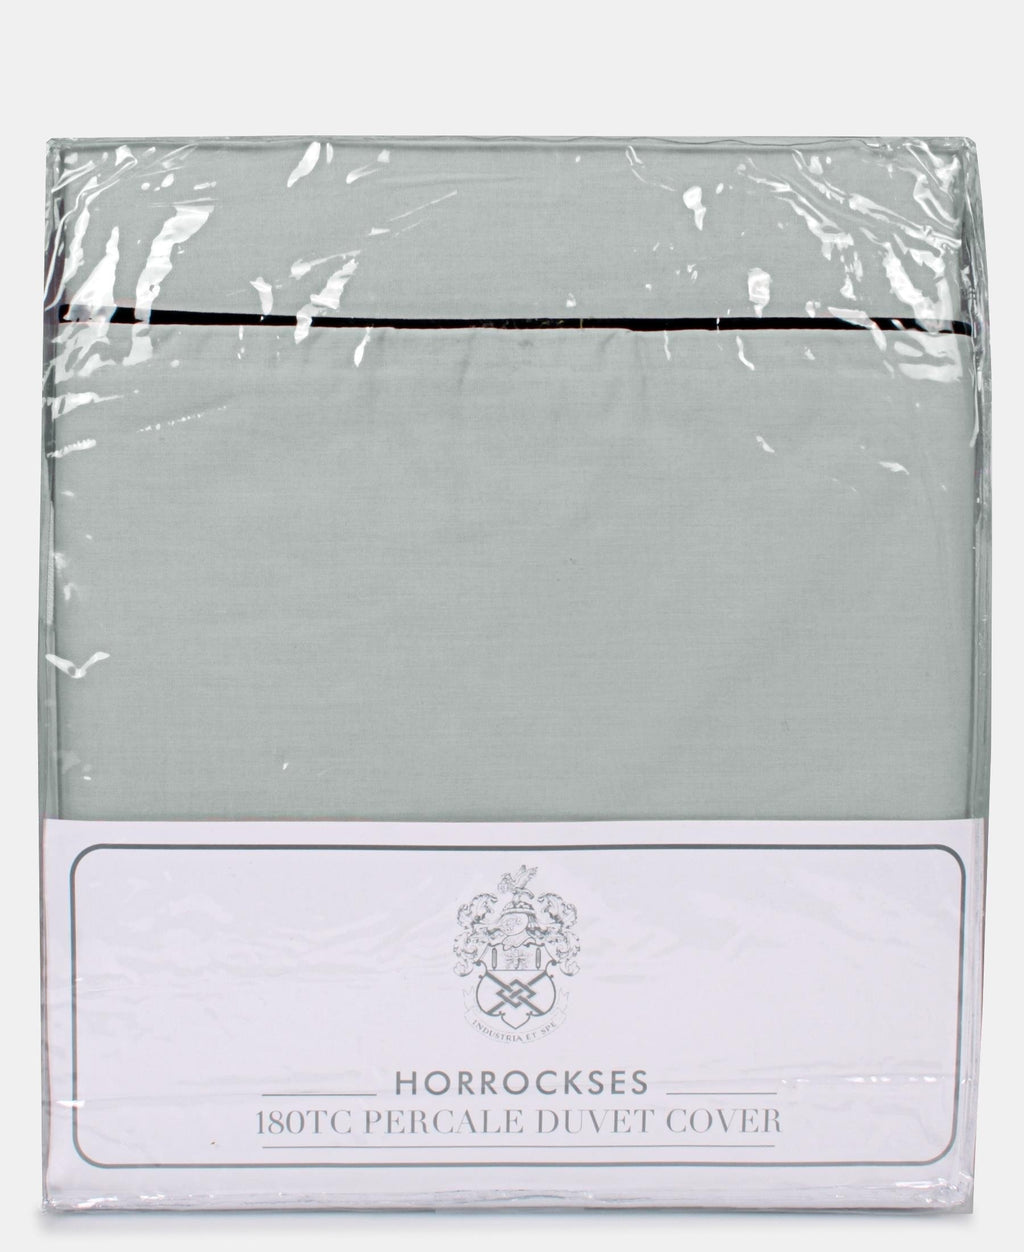 Horrockses 180 Thread Count Duvet Cover With Embellishment - Duck Egg